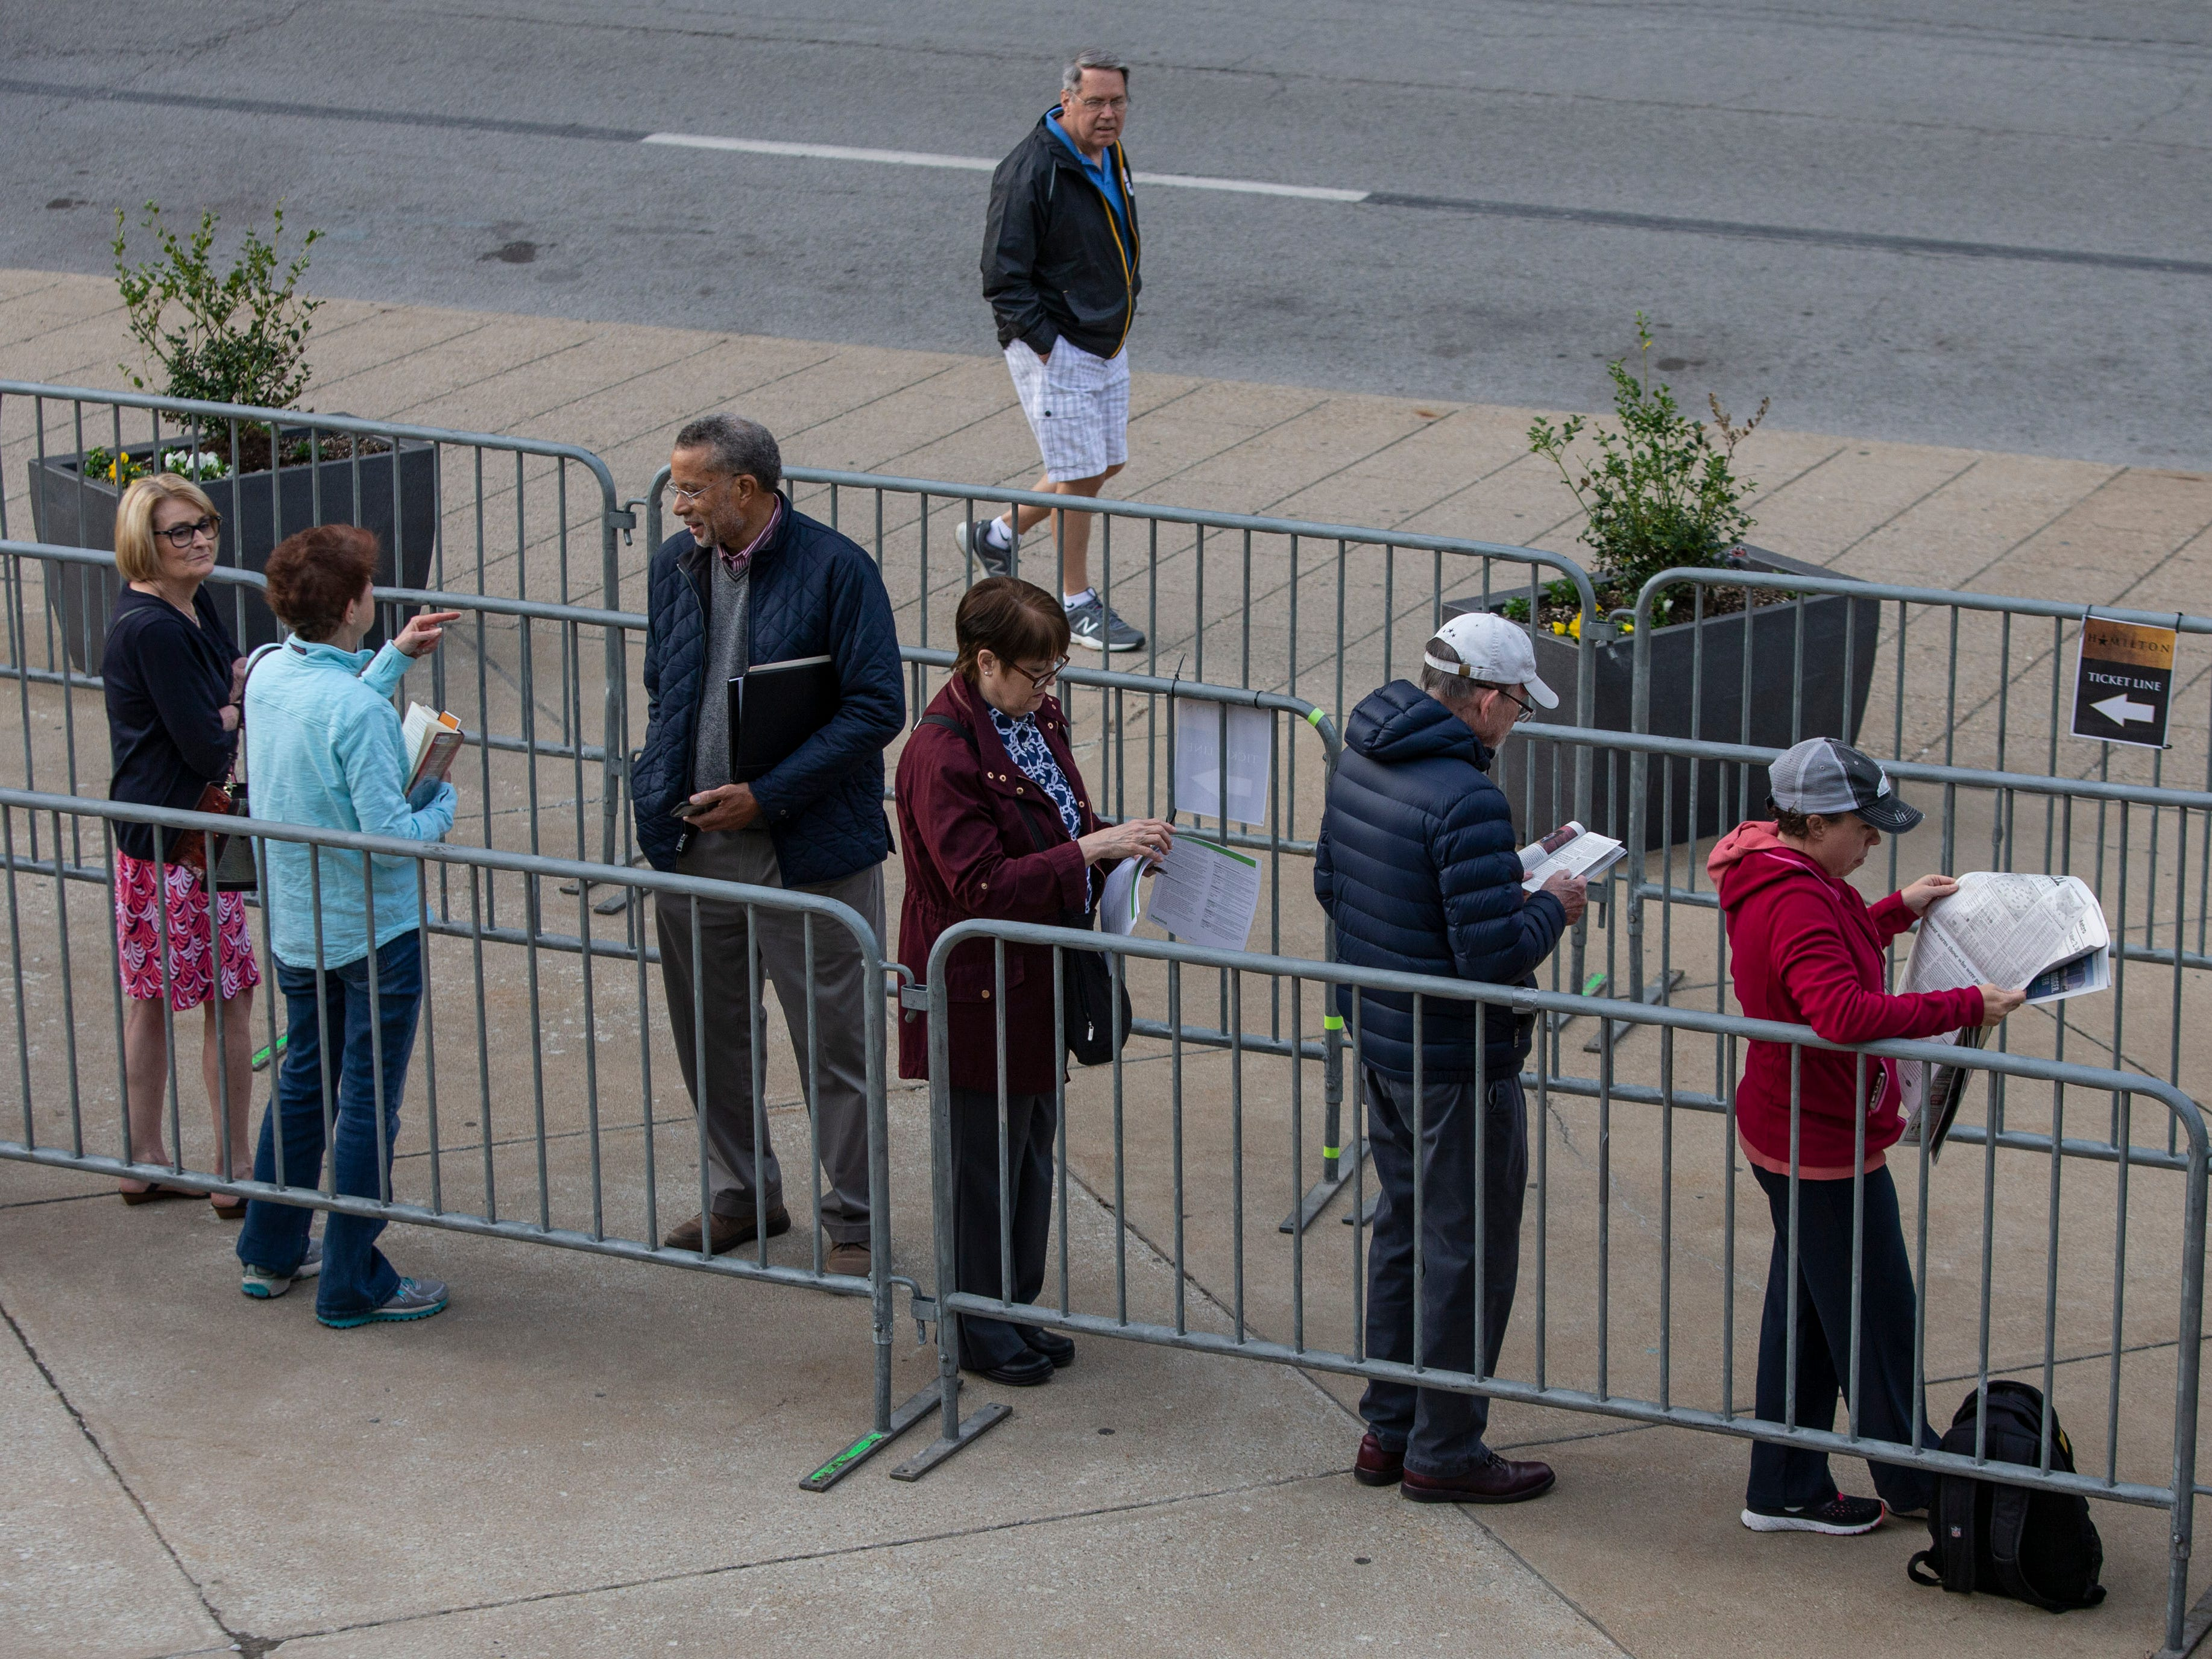 """People waiting in line for tickets to """"Hamilton"""" occupied their time reading the books, the newspaper and taking to others in line. April 11, 2019."""